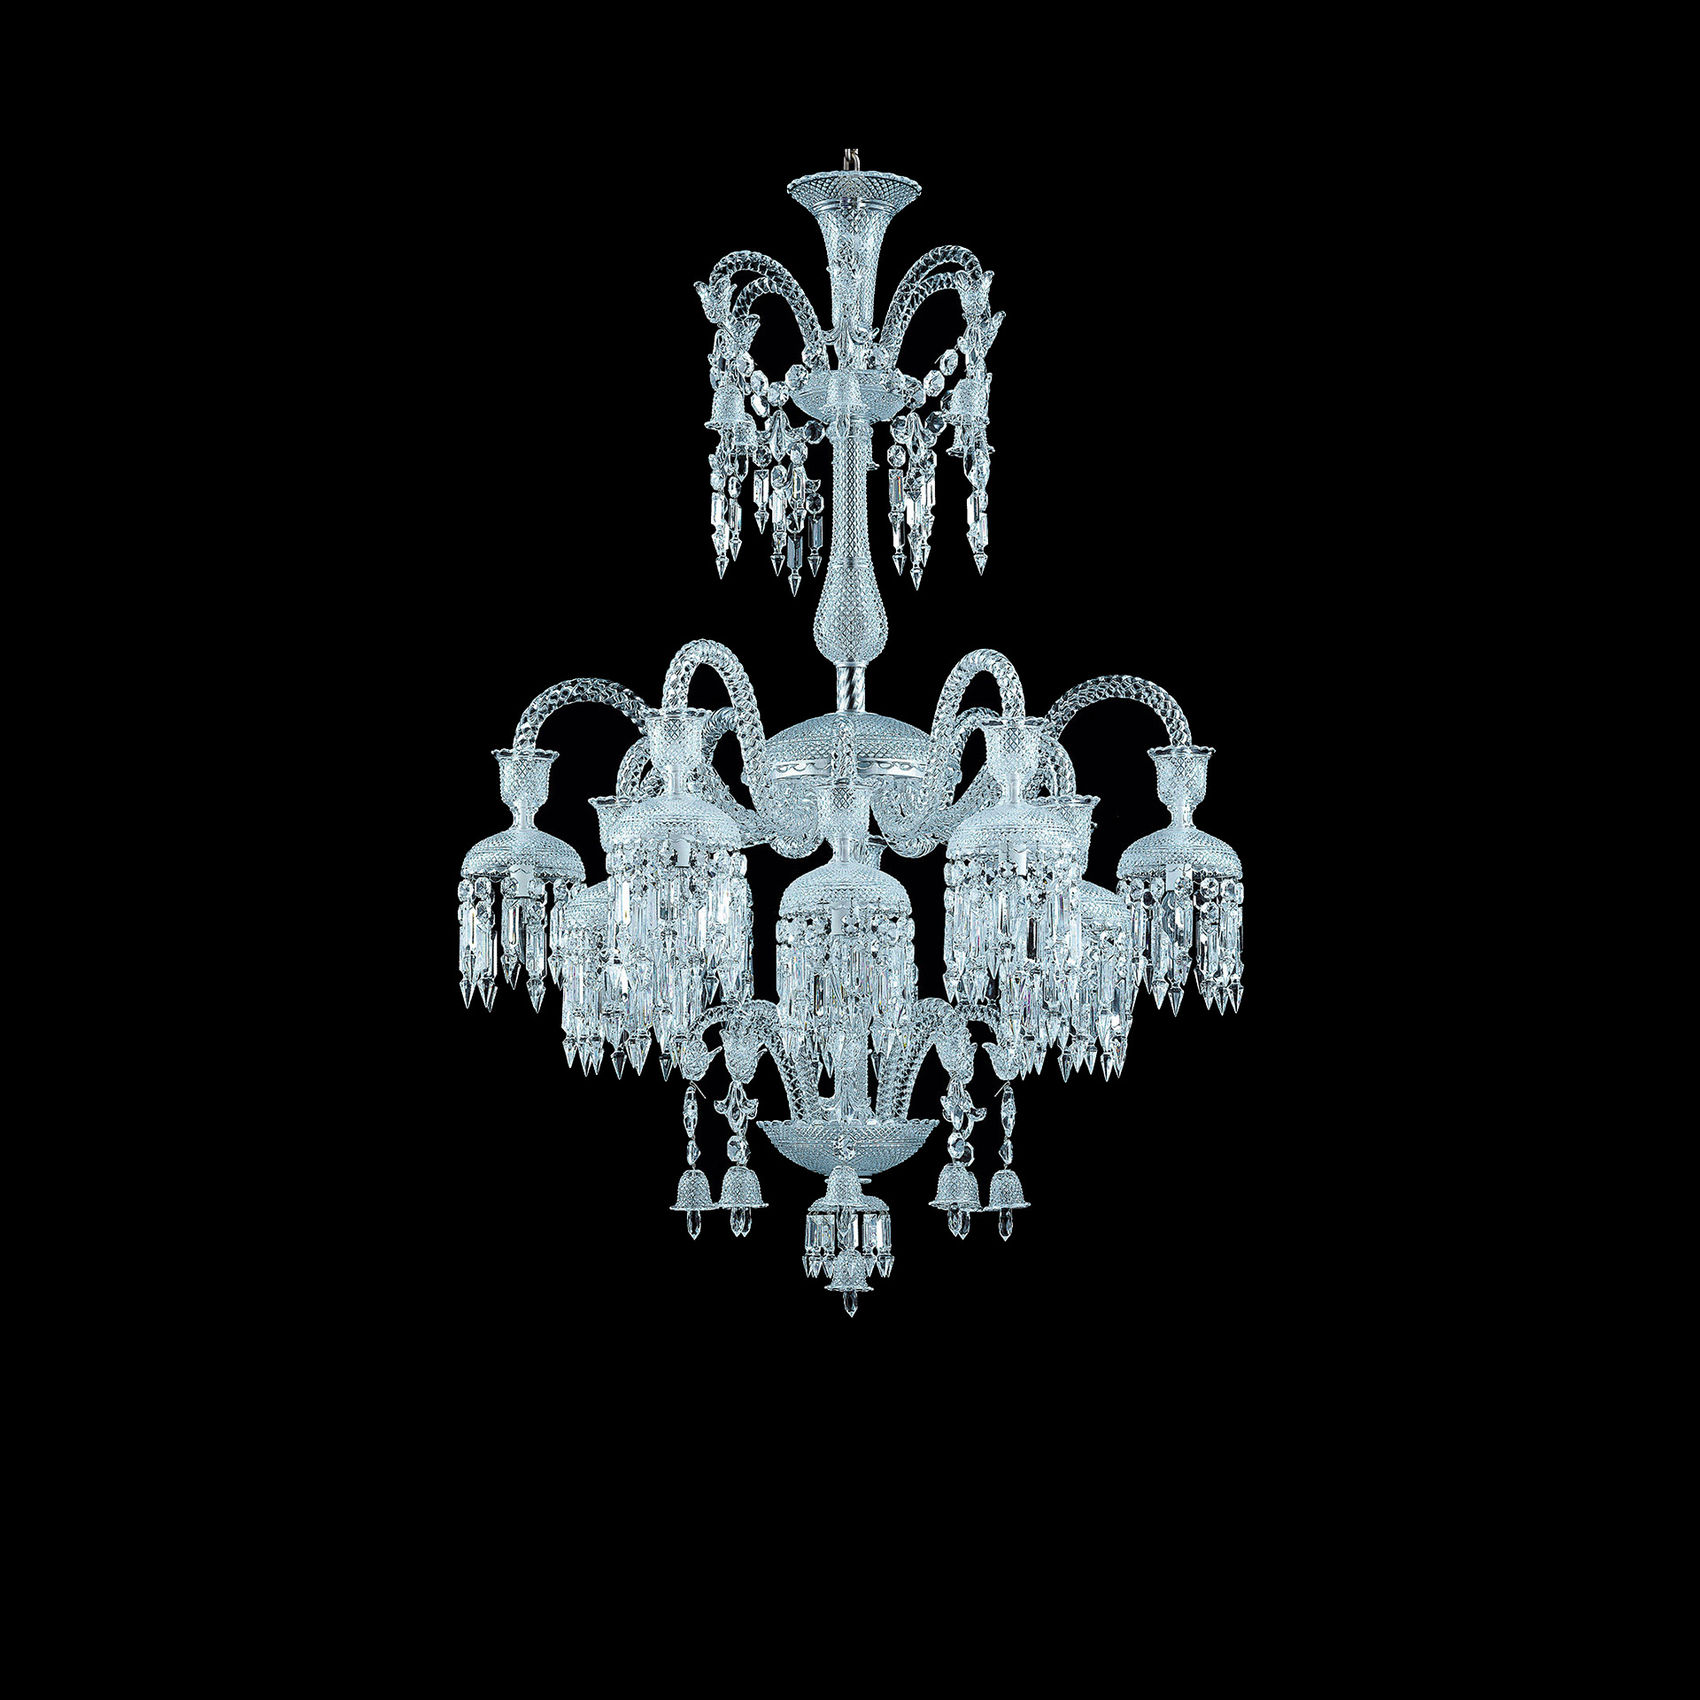 Baccarat Crystal, Solstice 12 Light Chandelier